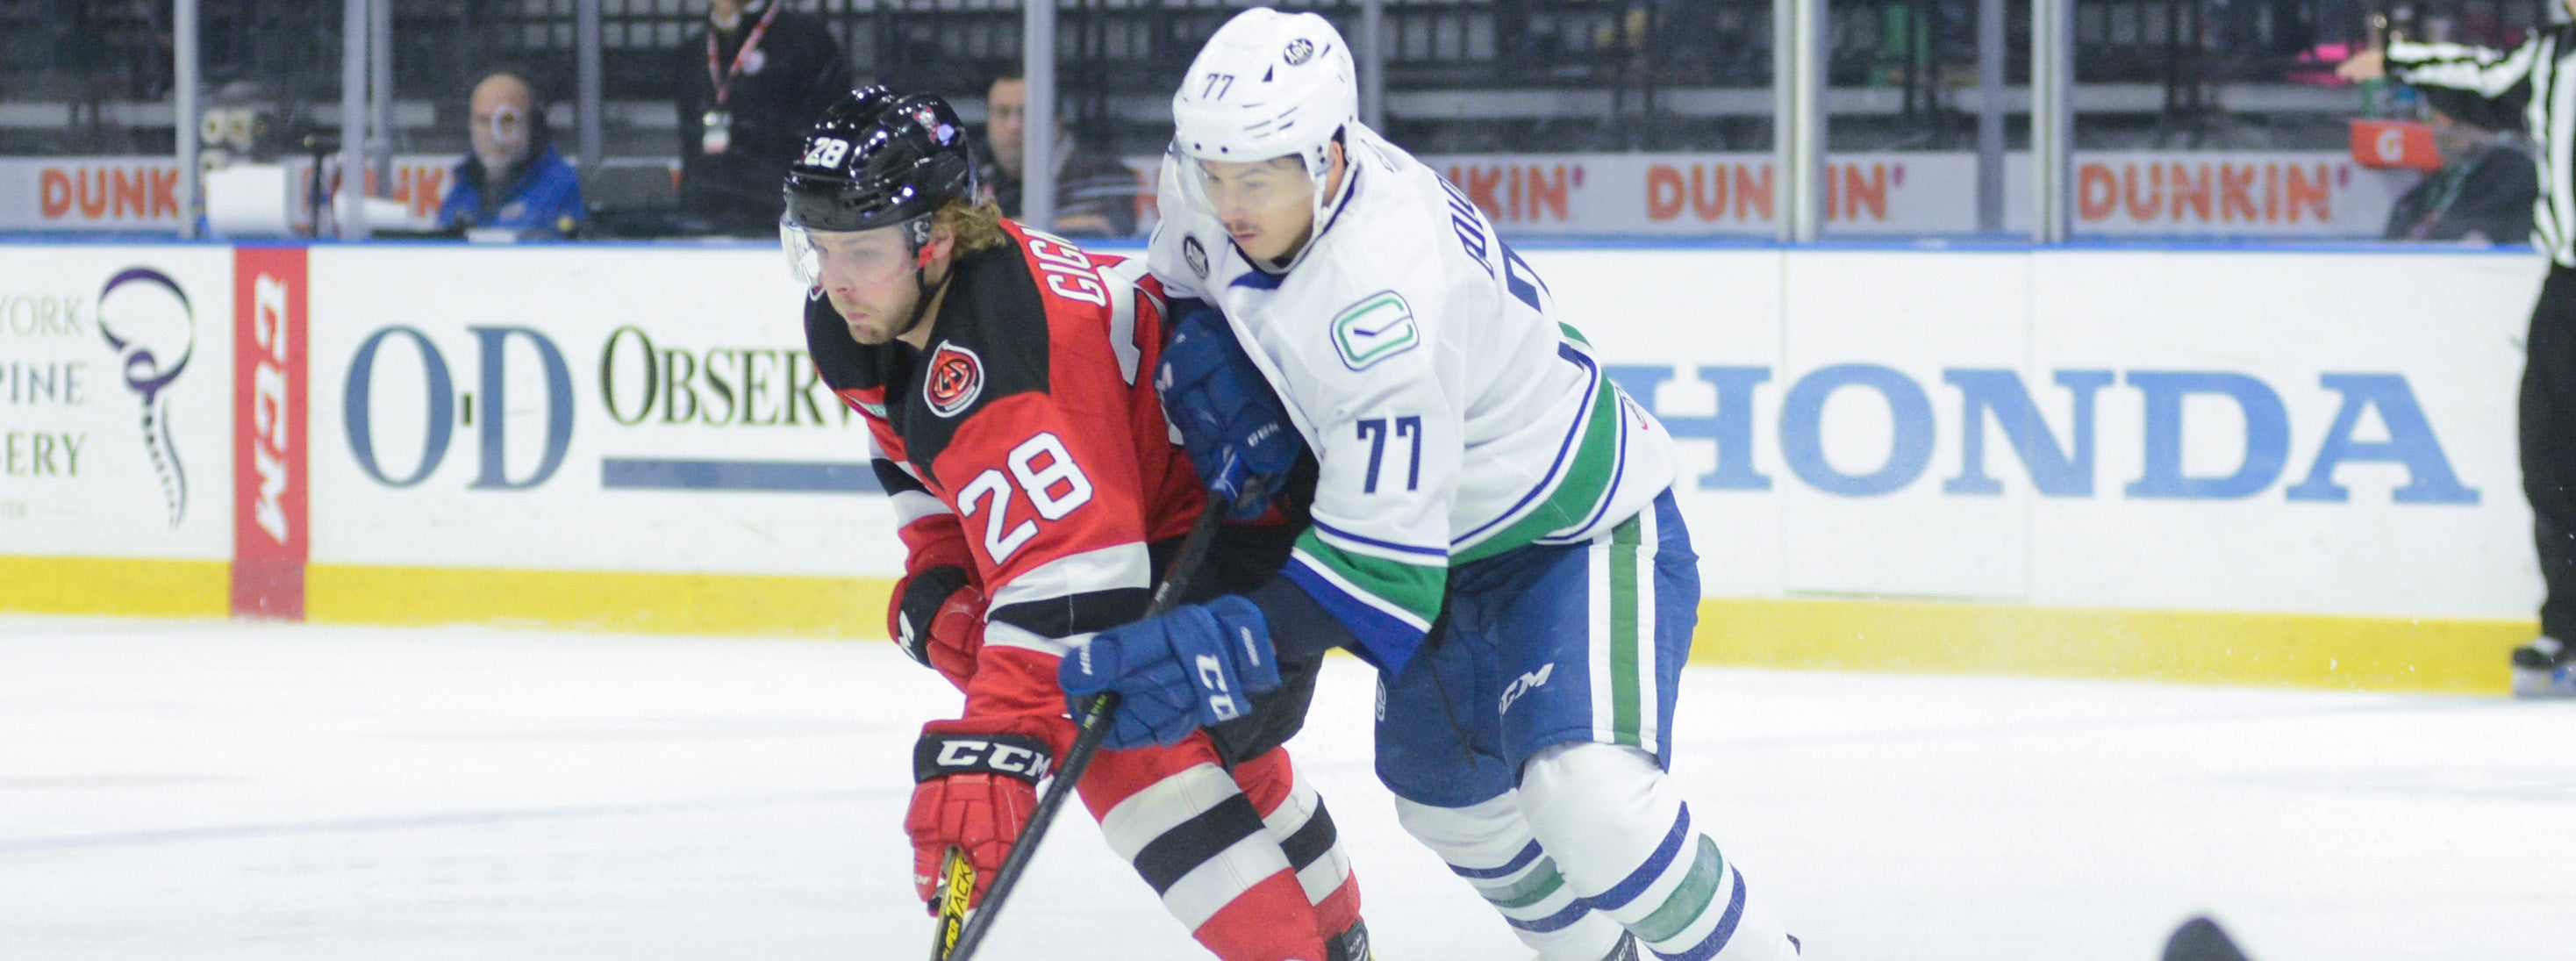 COMETS TRAVEL TO BINGHAMTON TO DUEL WITH DEVILS